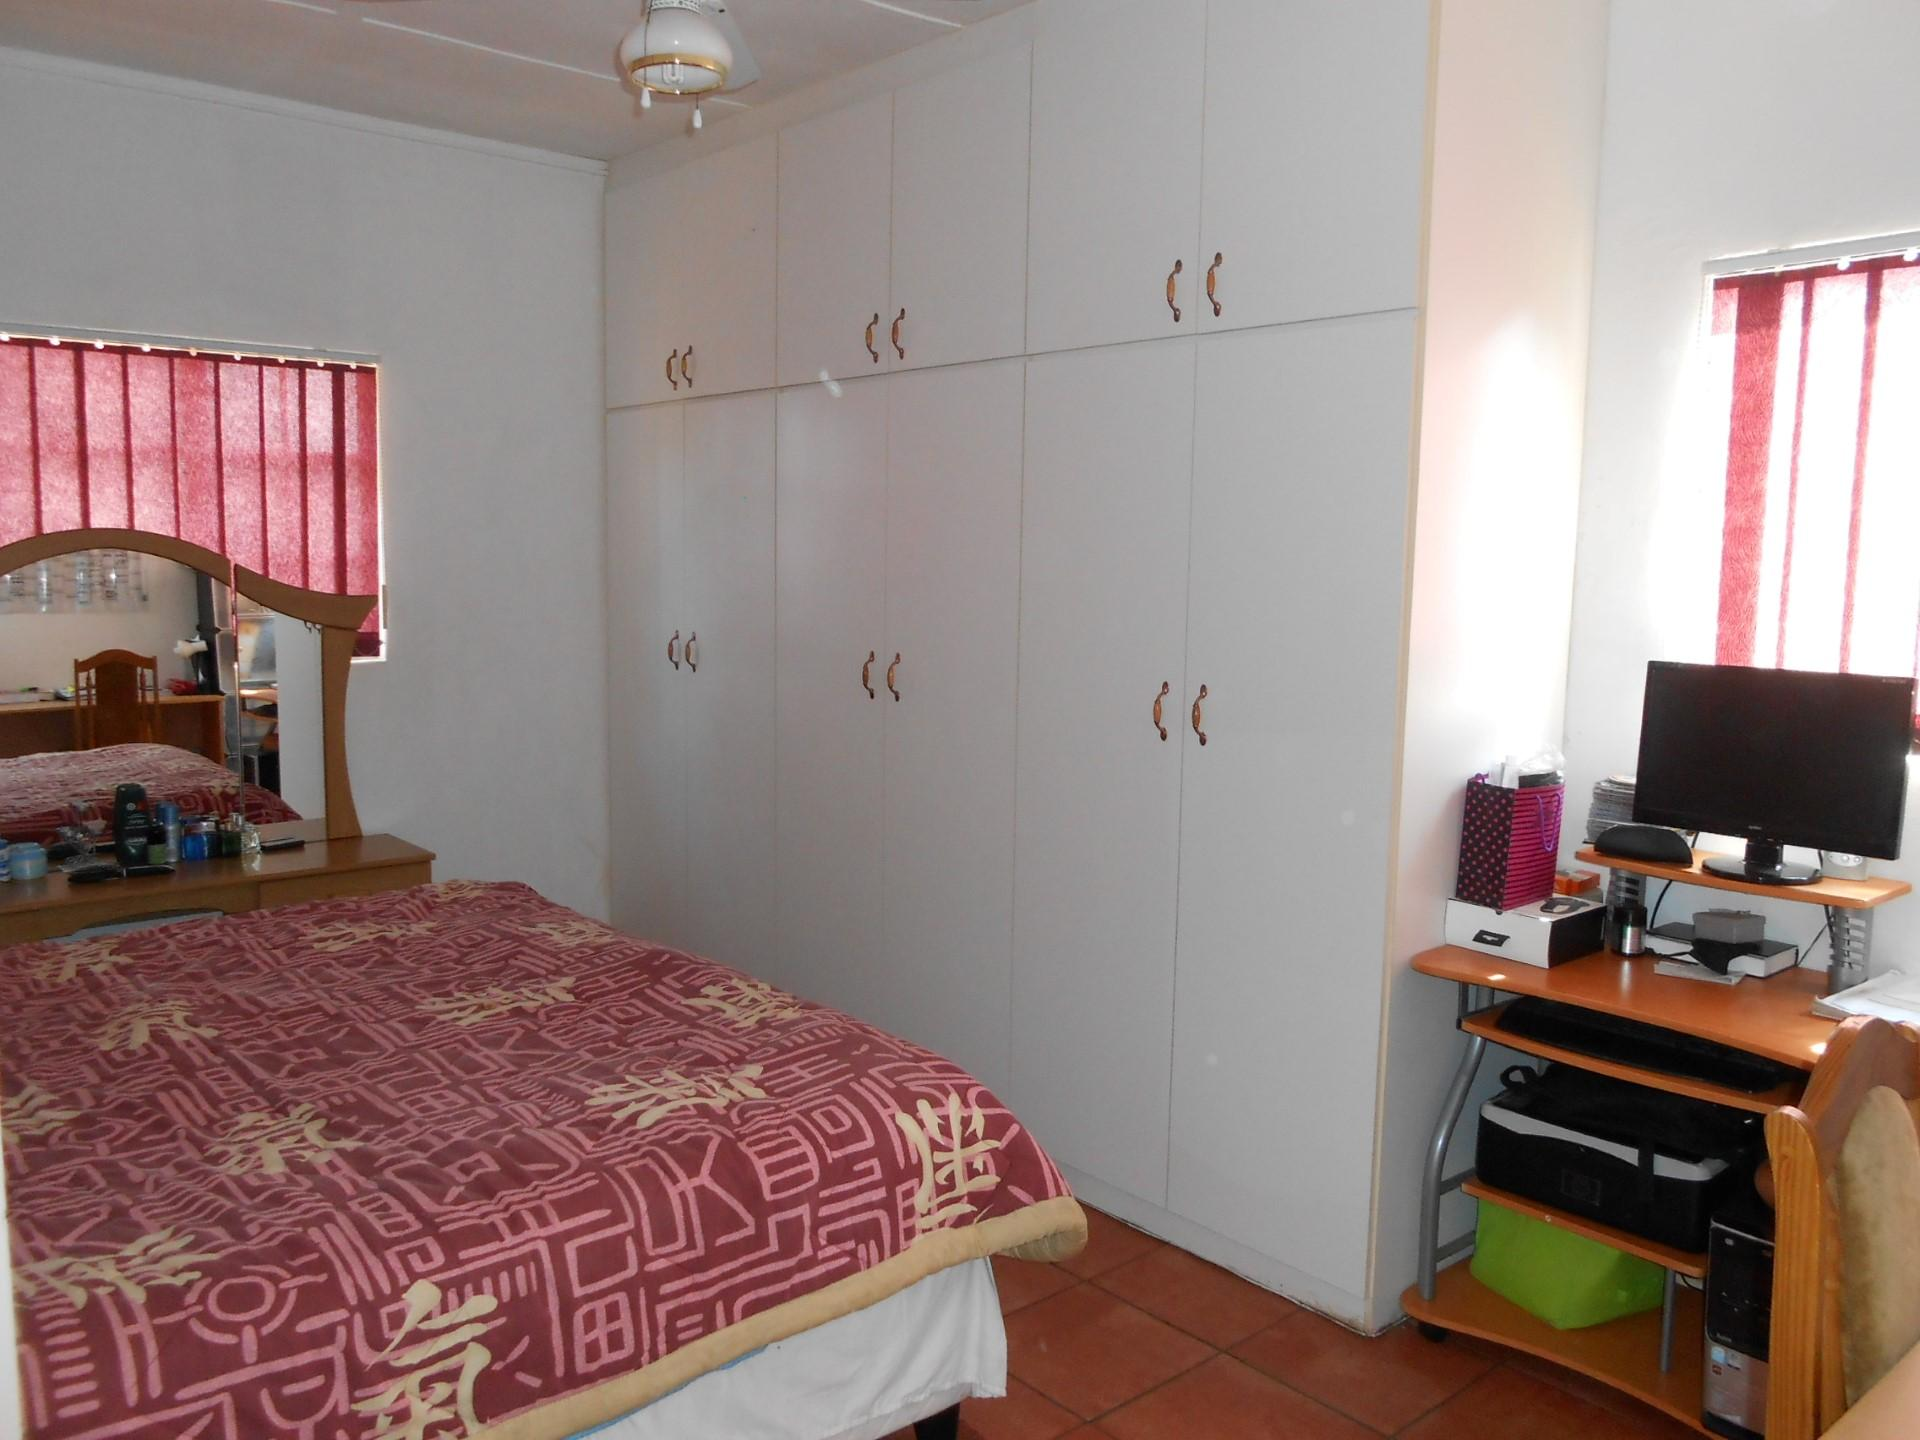 3 bedroom house for sale for sale in vanderbijlpark home for Pleasure p bedroom floor lyrics